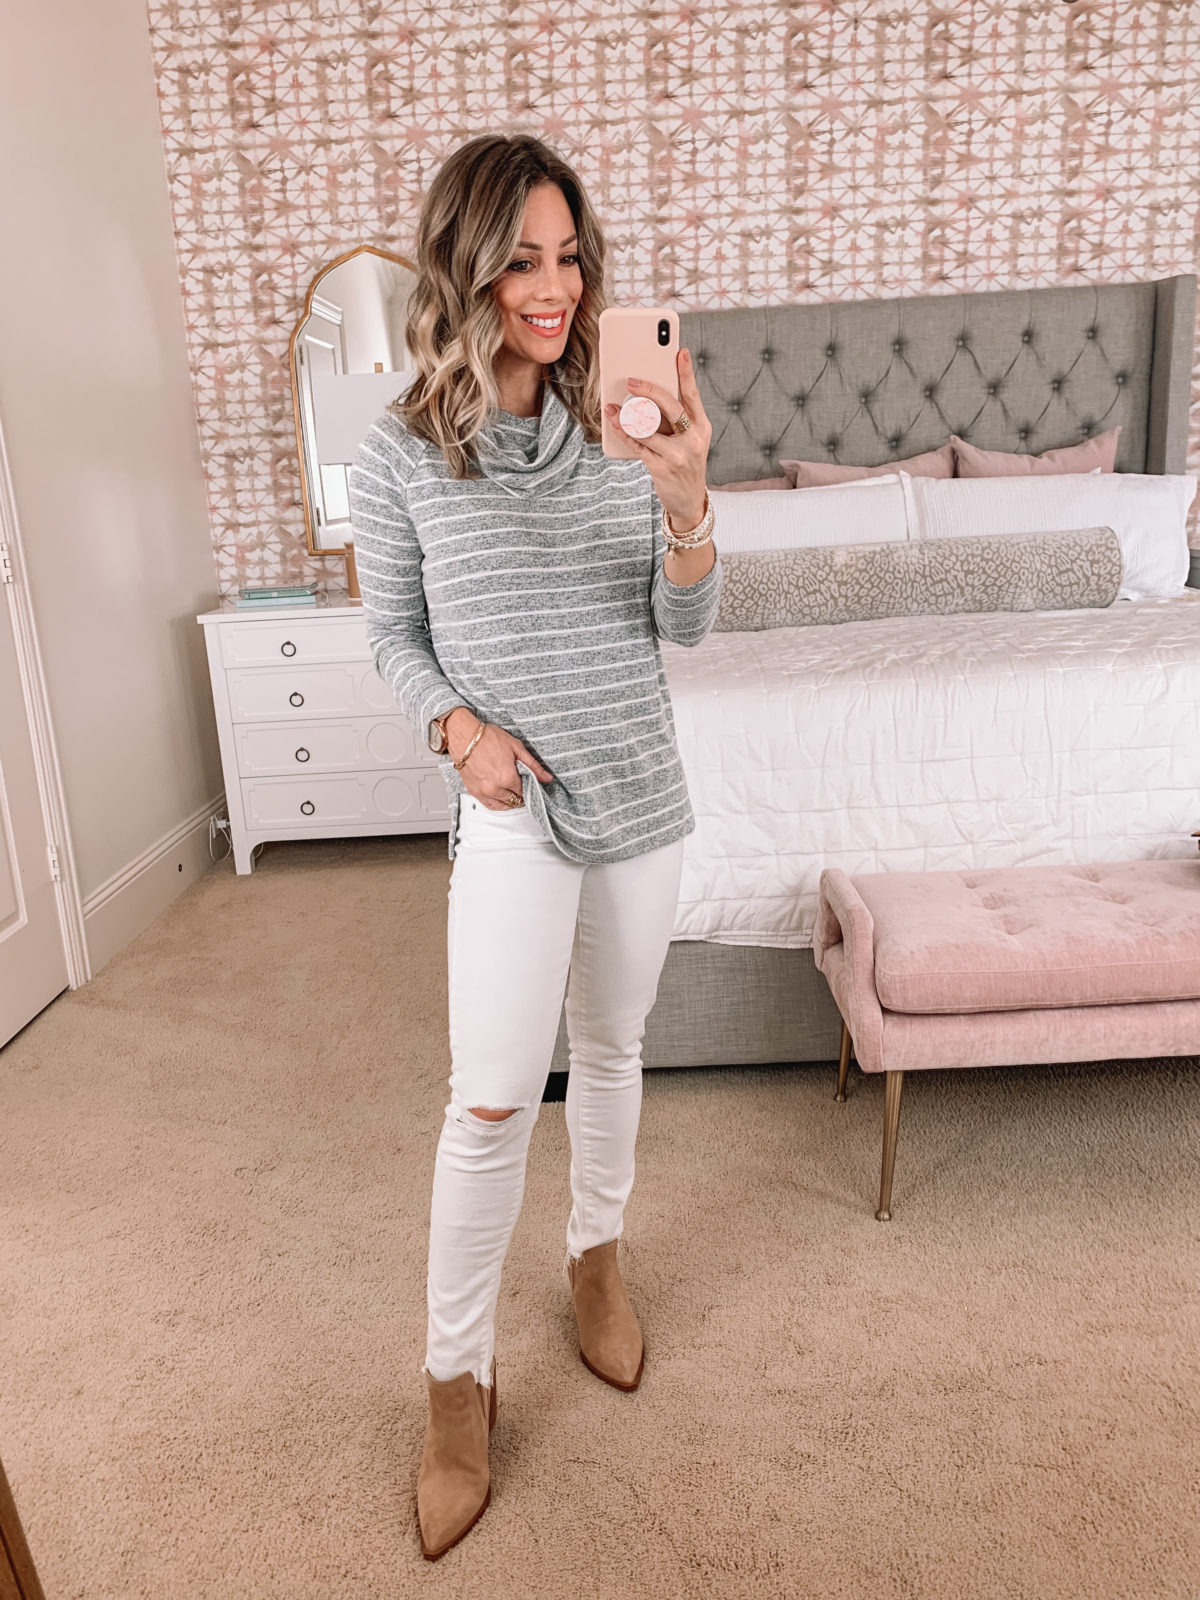 Amazon Fashion Faves, Greay Striped Tunic with Cowl Neck, Jeans, Crossbody